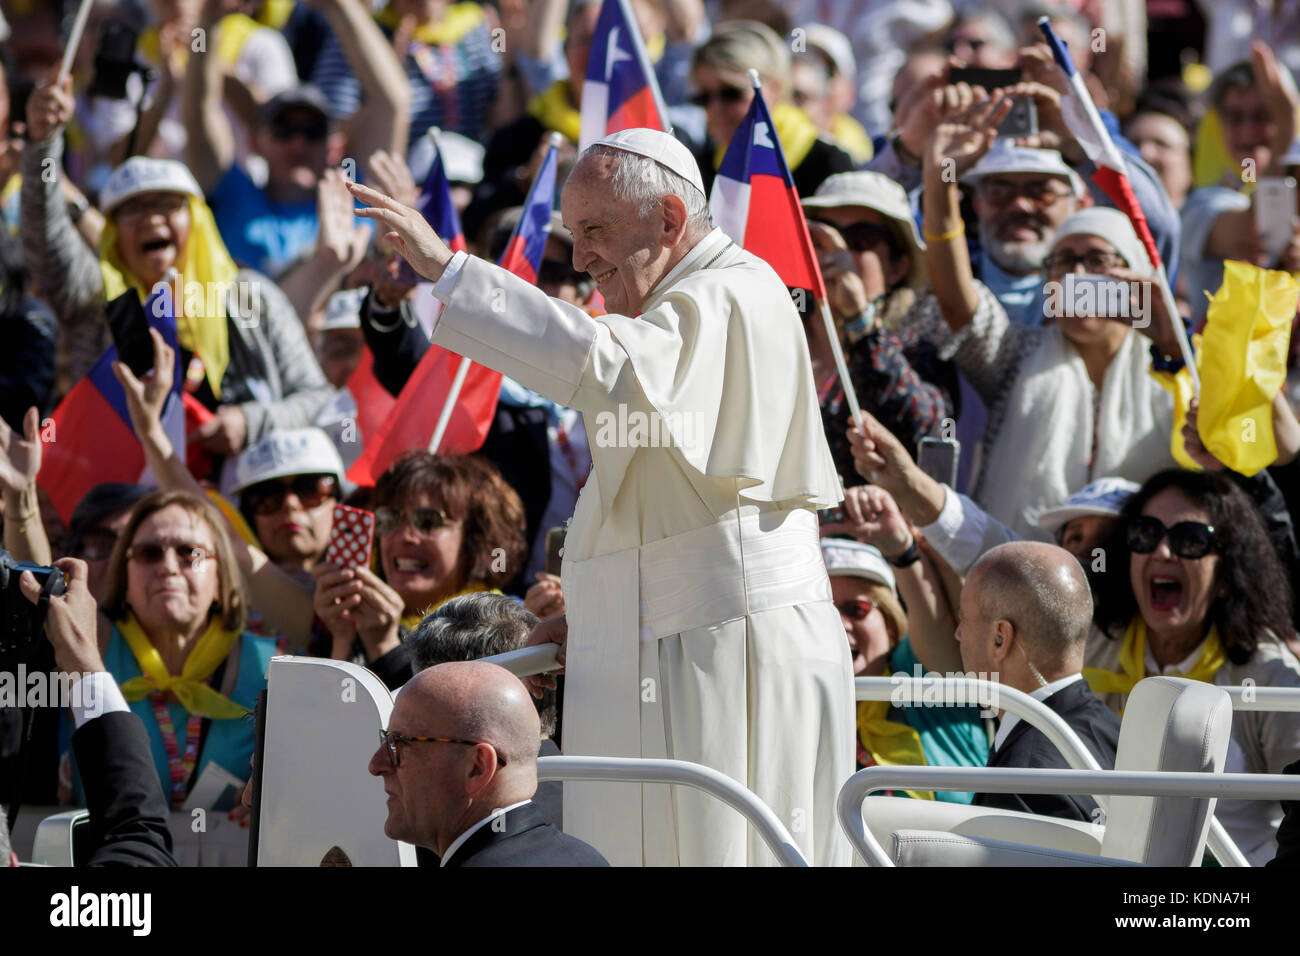 Vatican City, Vatican. 14th Oct, 2017. Pope Francis attends an audience to the Vincentian Family (Saint Vincent - Stock Image